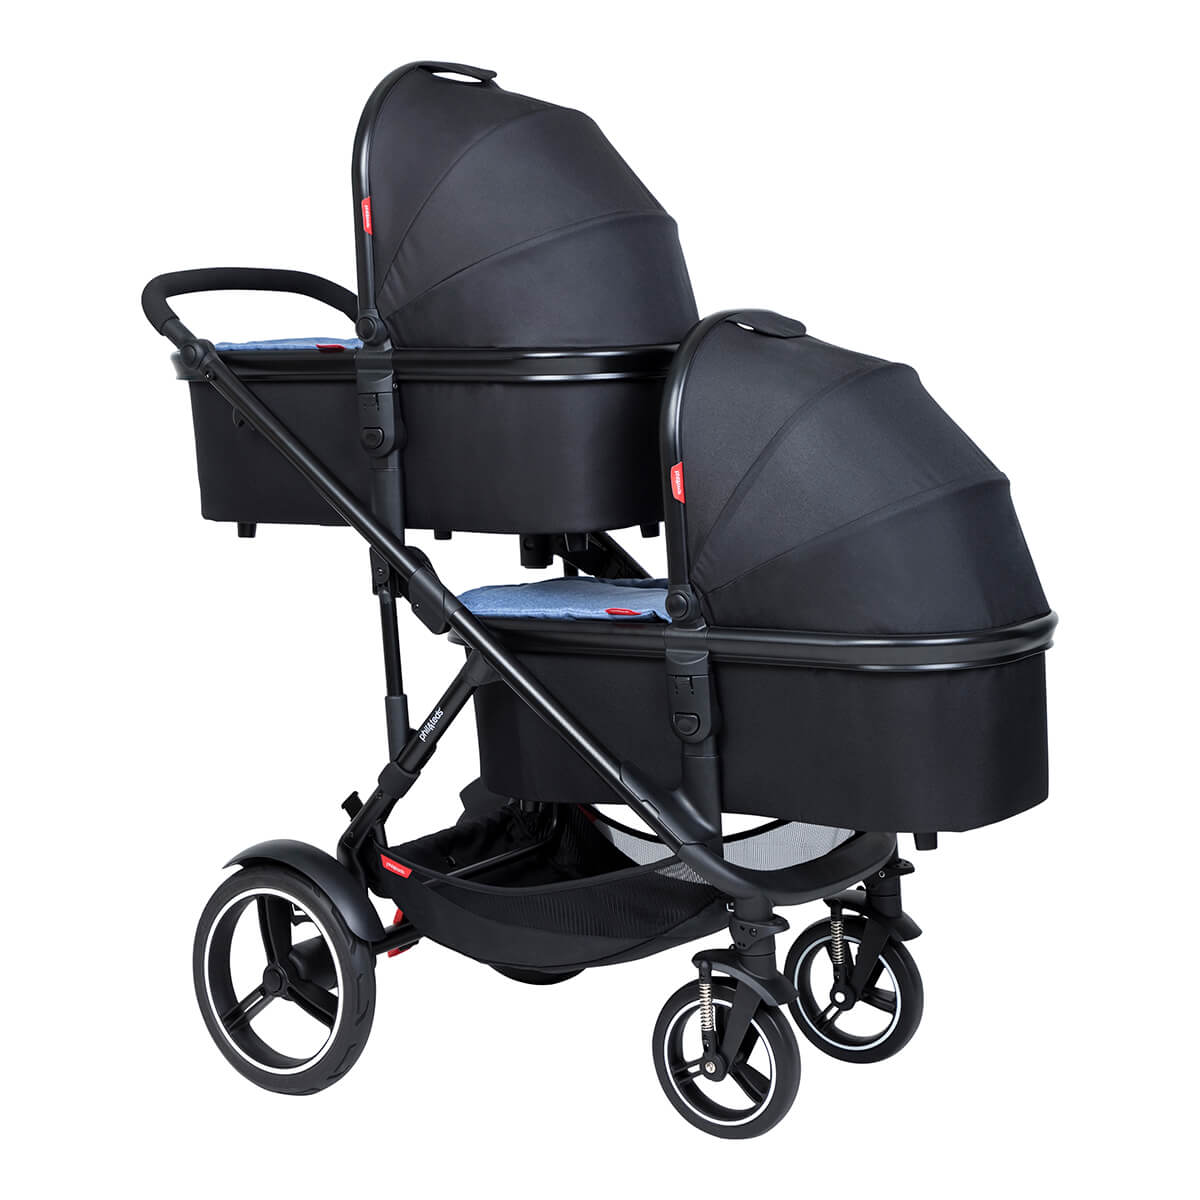 https://cdn.accentuate.io/4509916495949/19466204610754/philteds-voyager-inline-buggy-with-double-snug-carrycots-v1626485594830.jpg?1200x1200